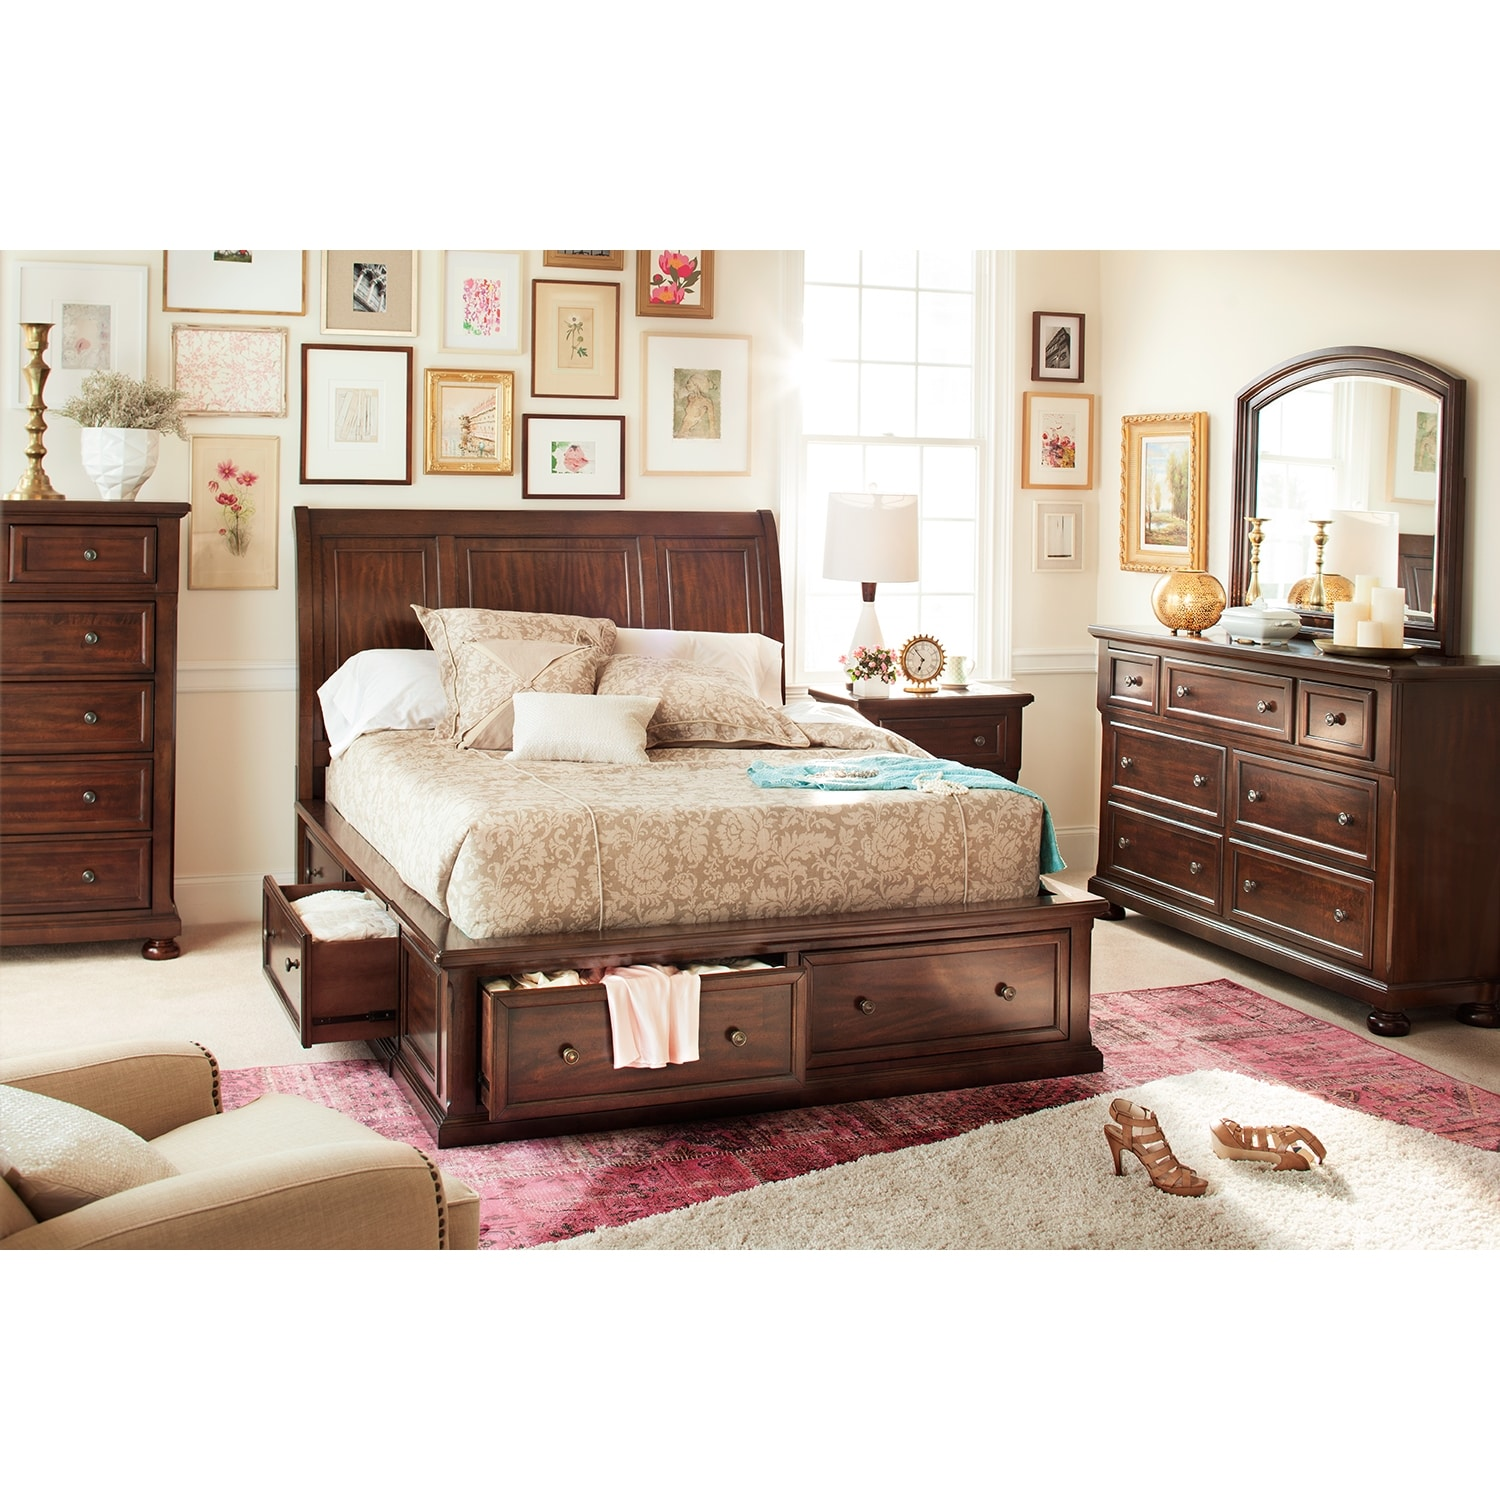 Hanover 7 piece king storage bedroom set cherry for American furniture bedroom furniture